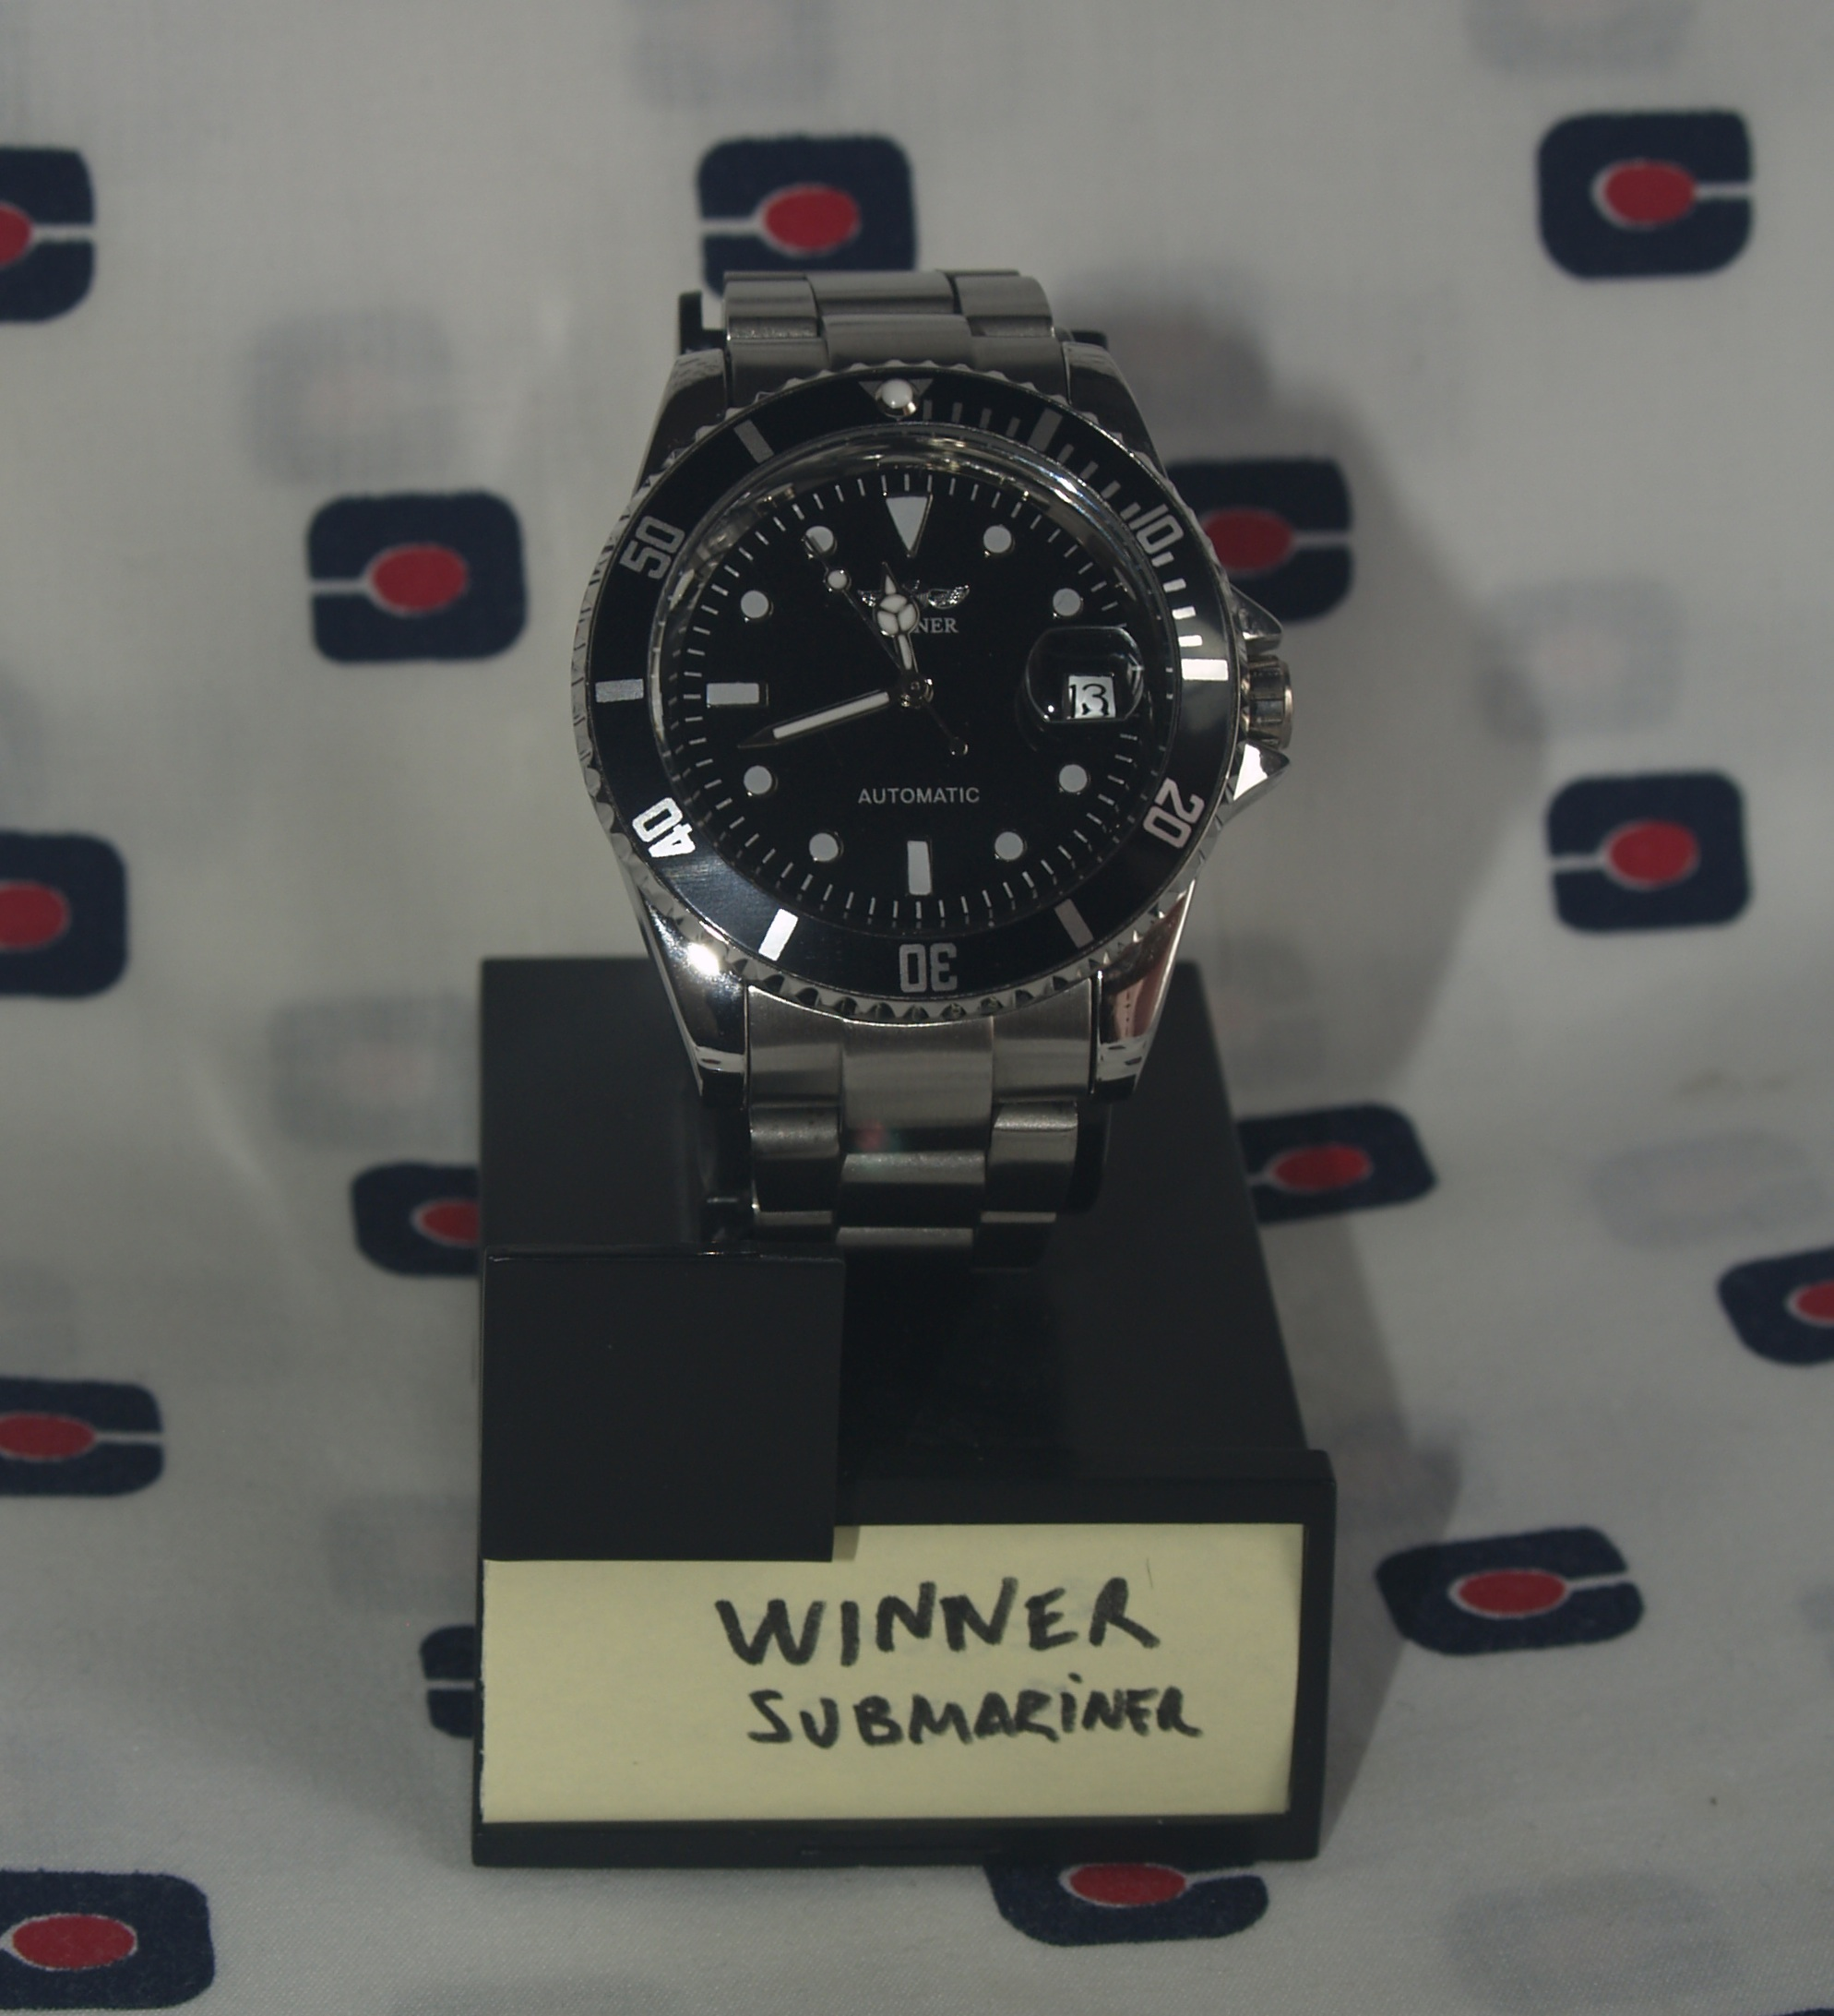 Review Winner Submariner – Relojes Asequibles